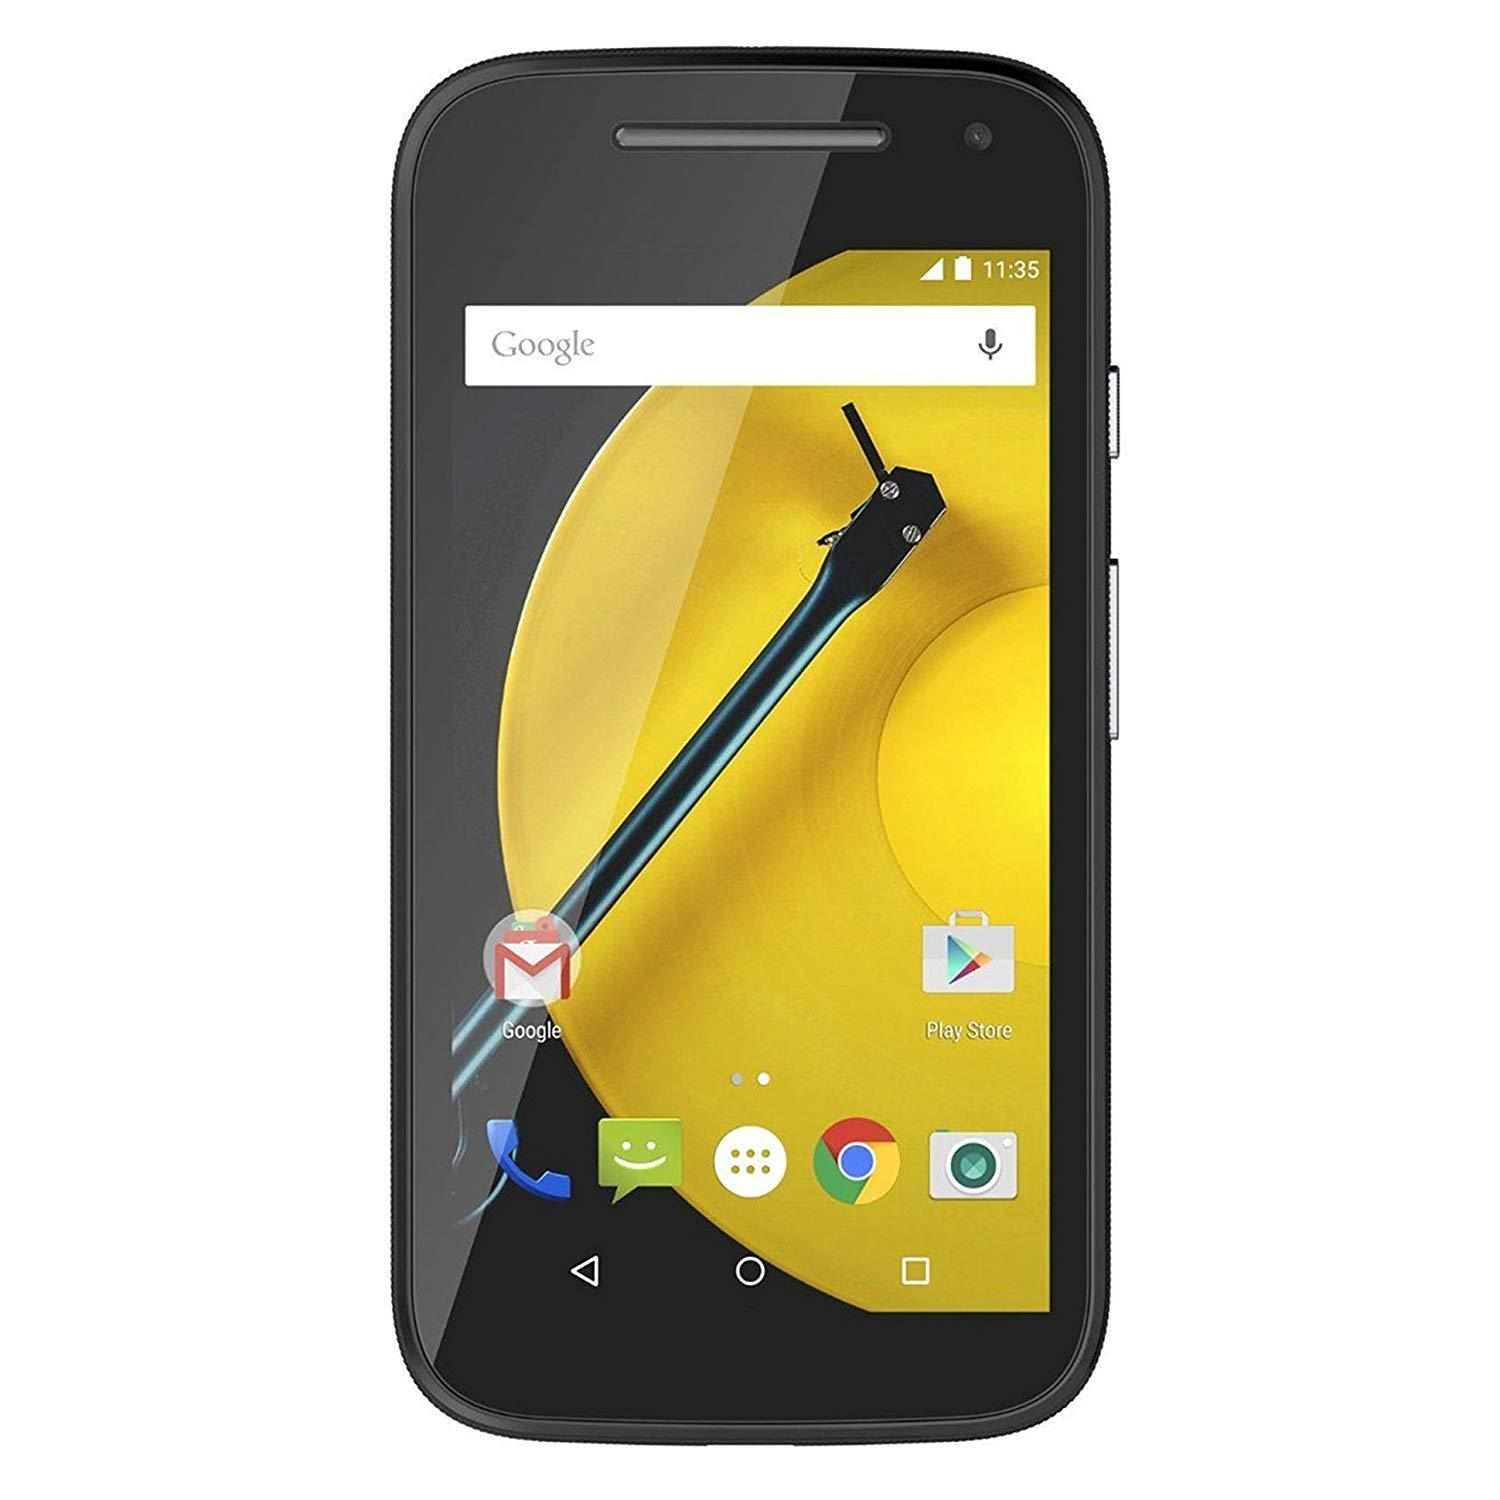 Primary image for AT&T Motorola Moto E (2nd Generation) Locked Cellphone, Black